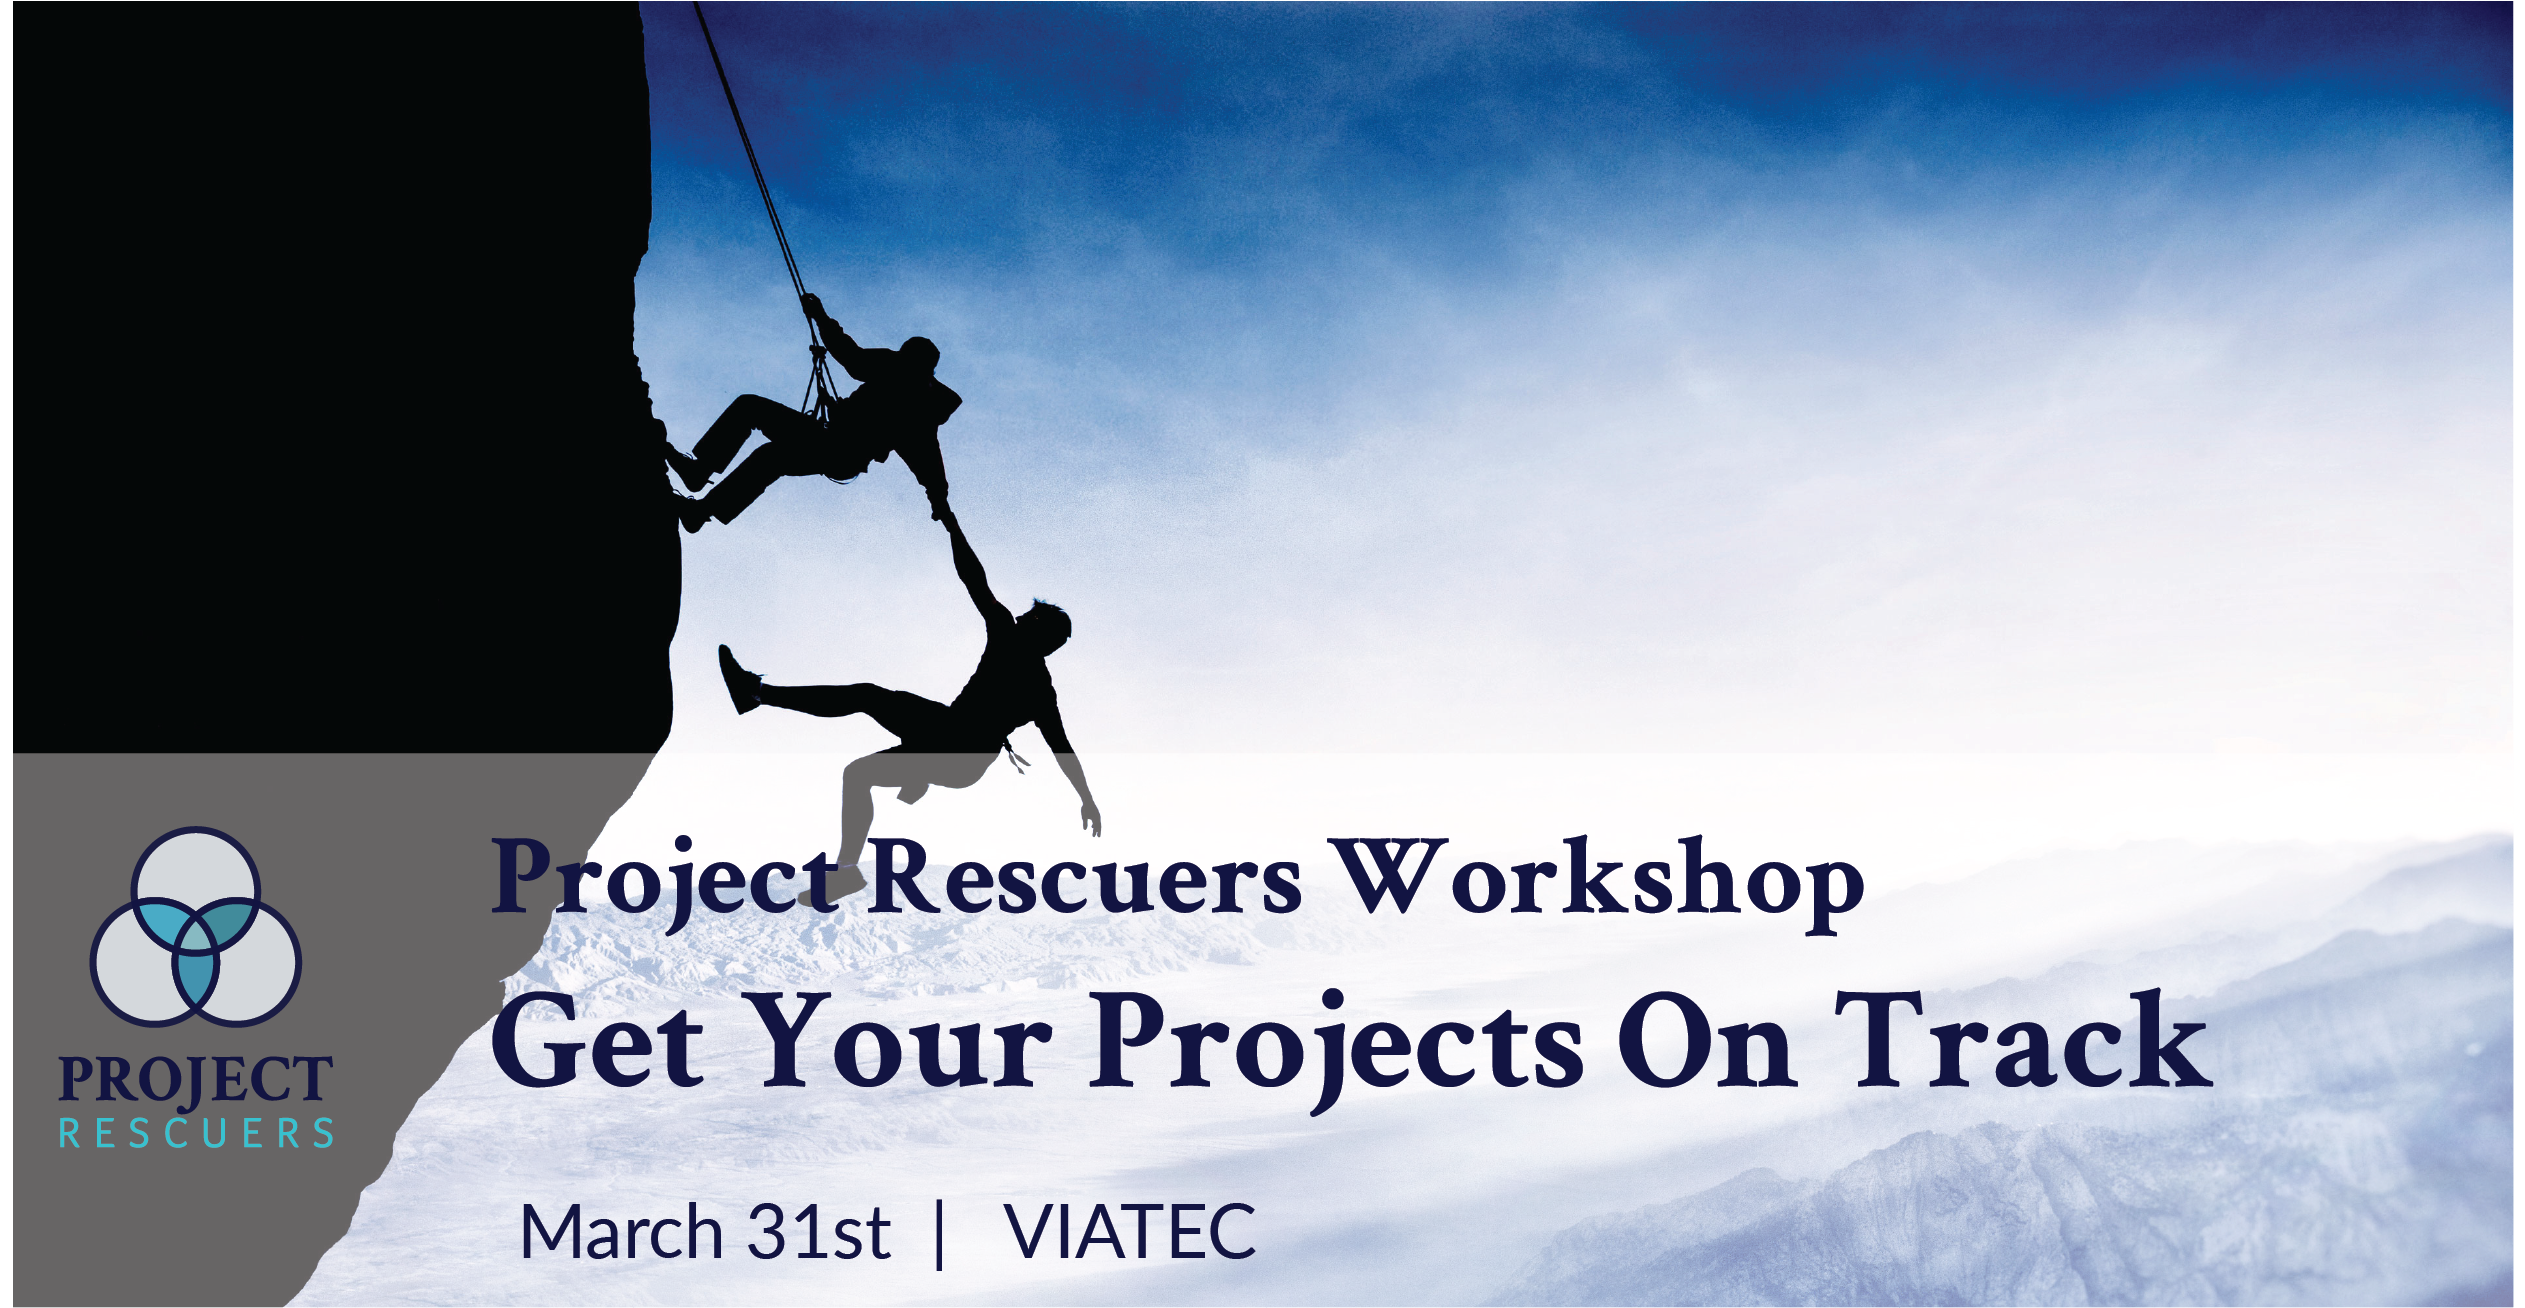 Project Rescuer Workshop: Get Your Projects On Track!